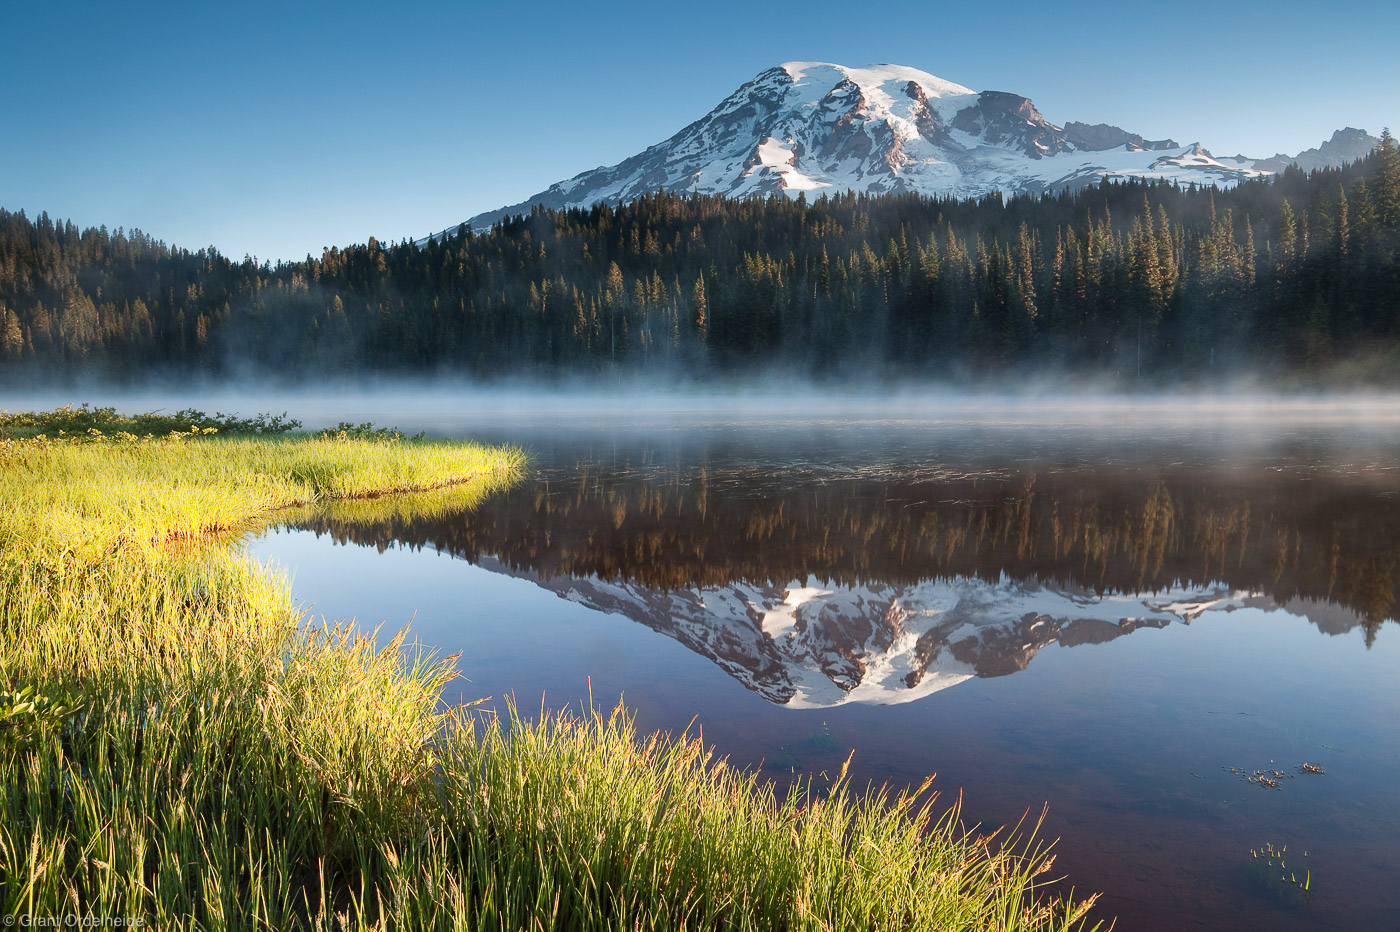 mt. rainier, washingtion, national park, reflection, lakes, early, morning, light, grass, paradise, photo